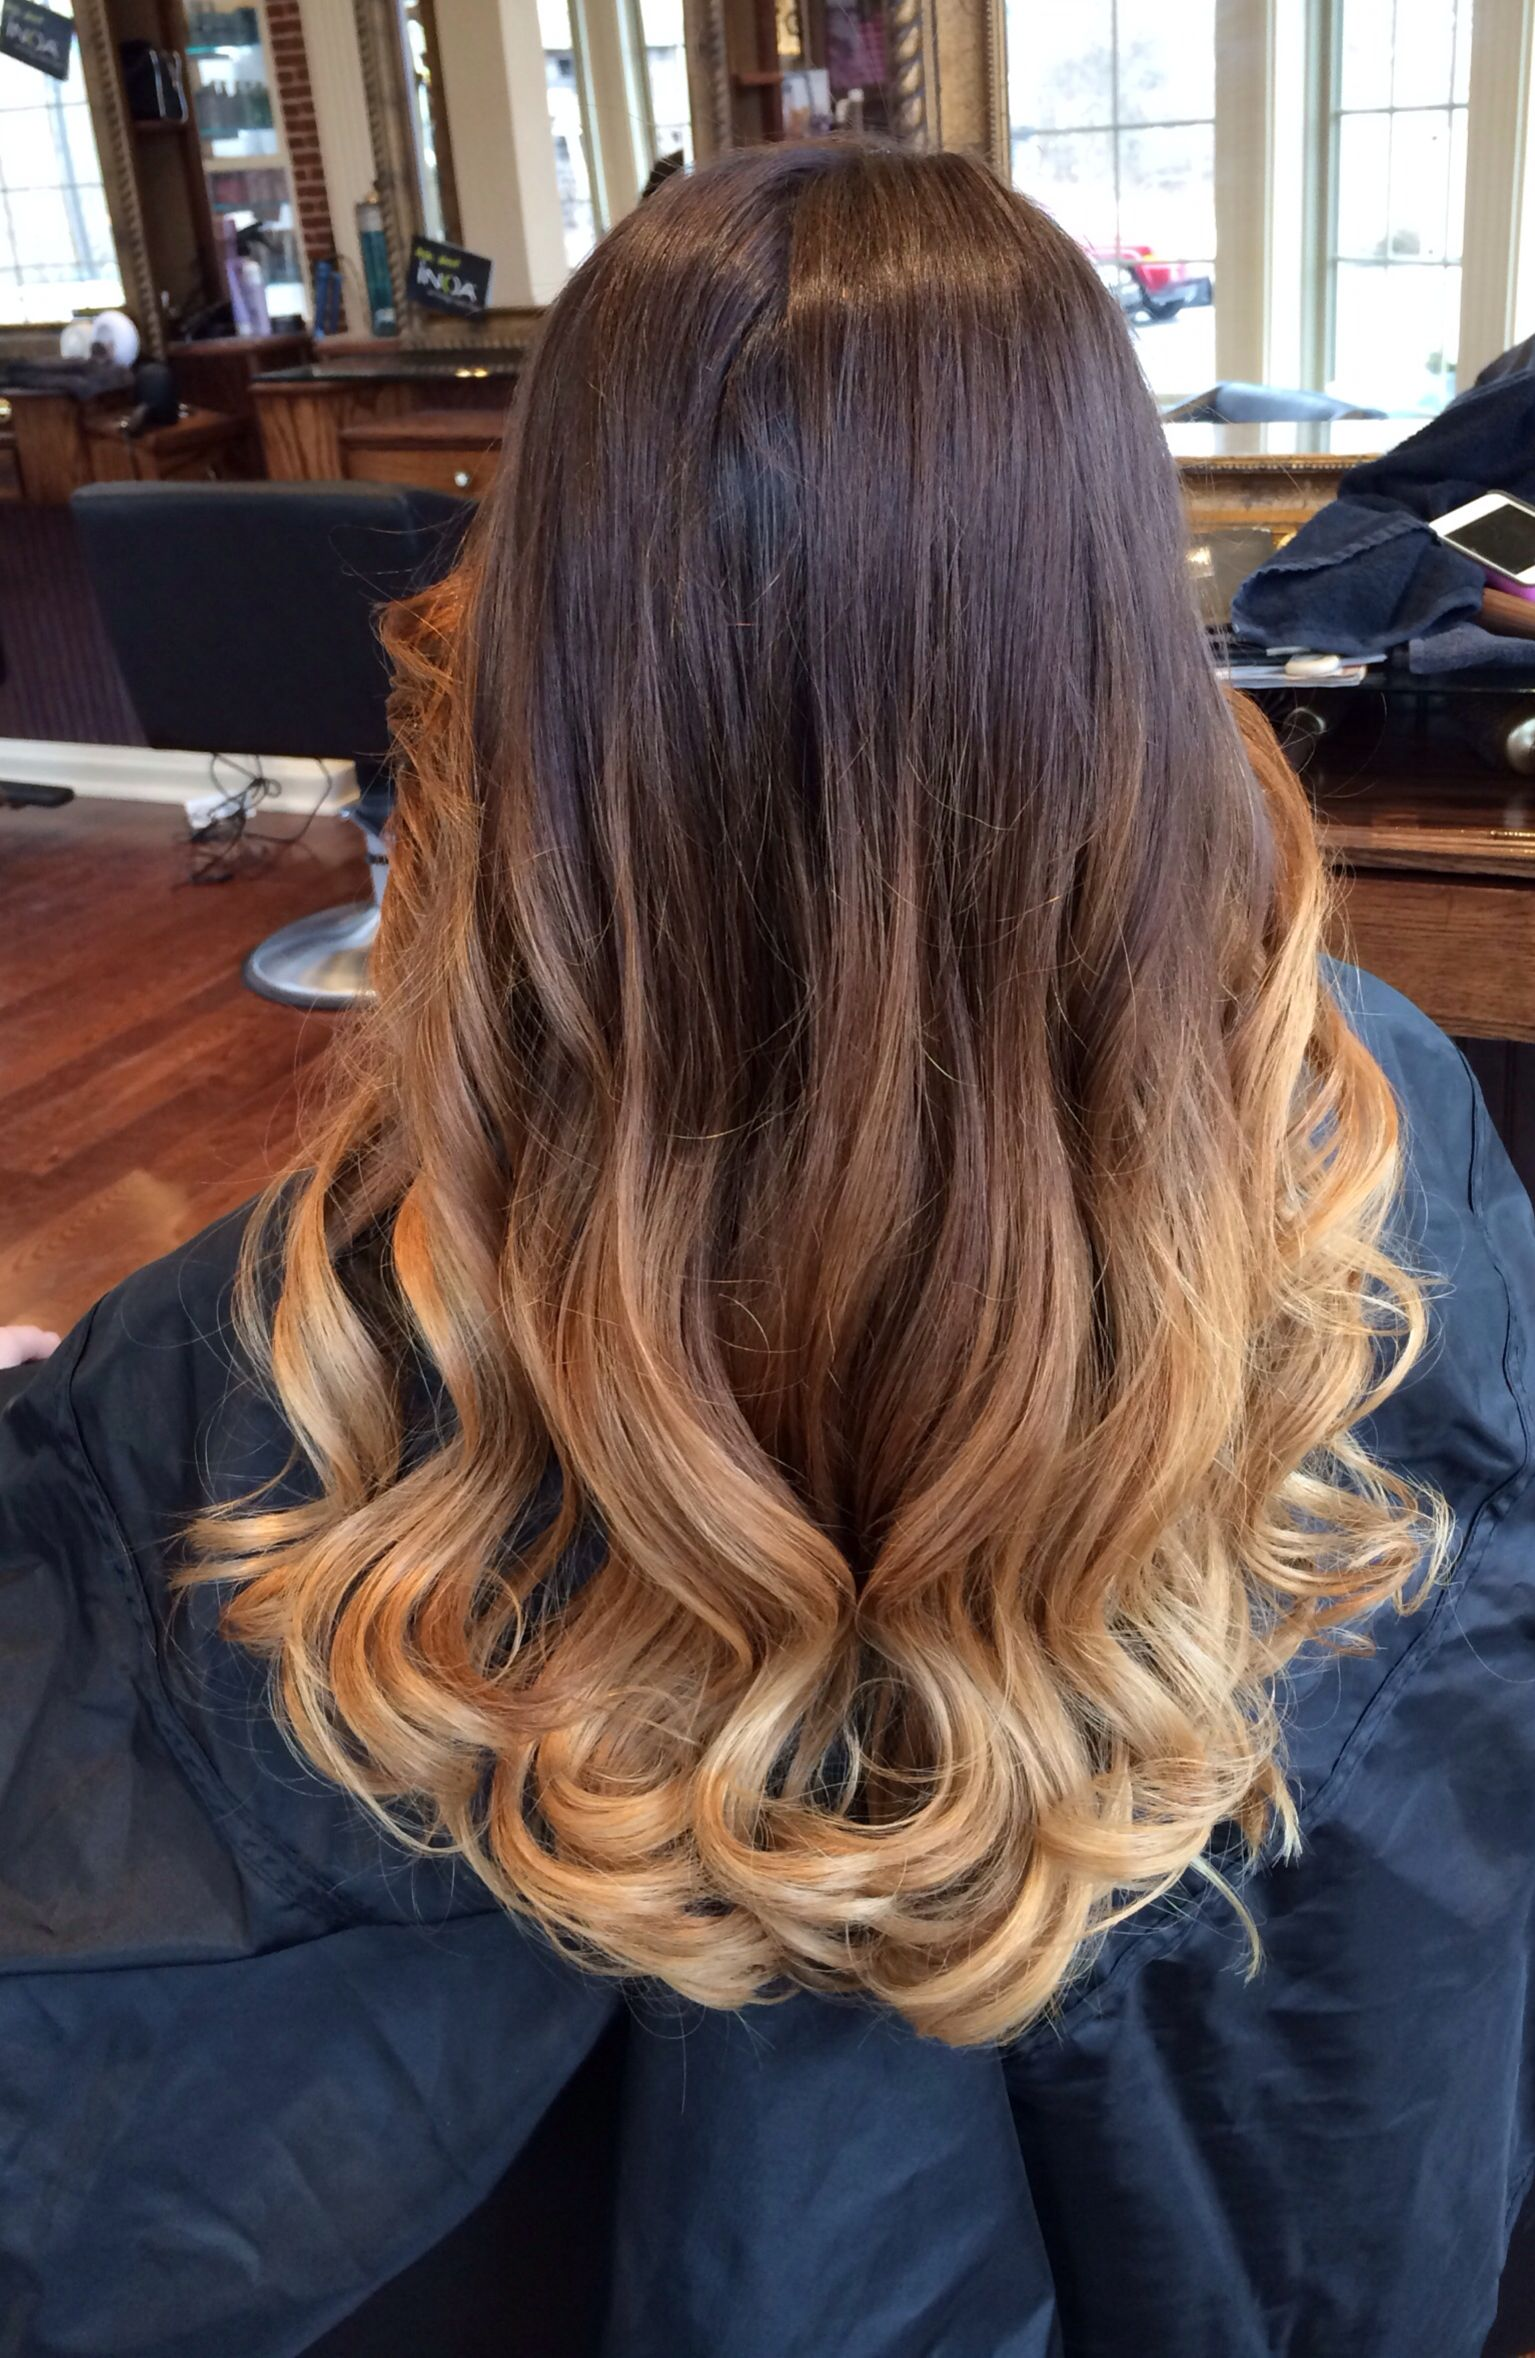 Ombr Hair Hair Pinterest Hair Coloring Hair Style And Bayalage